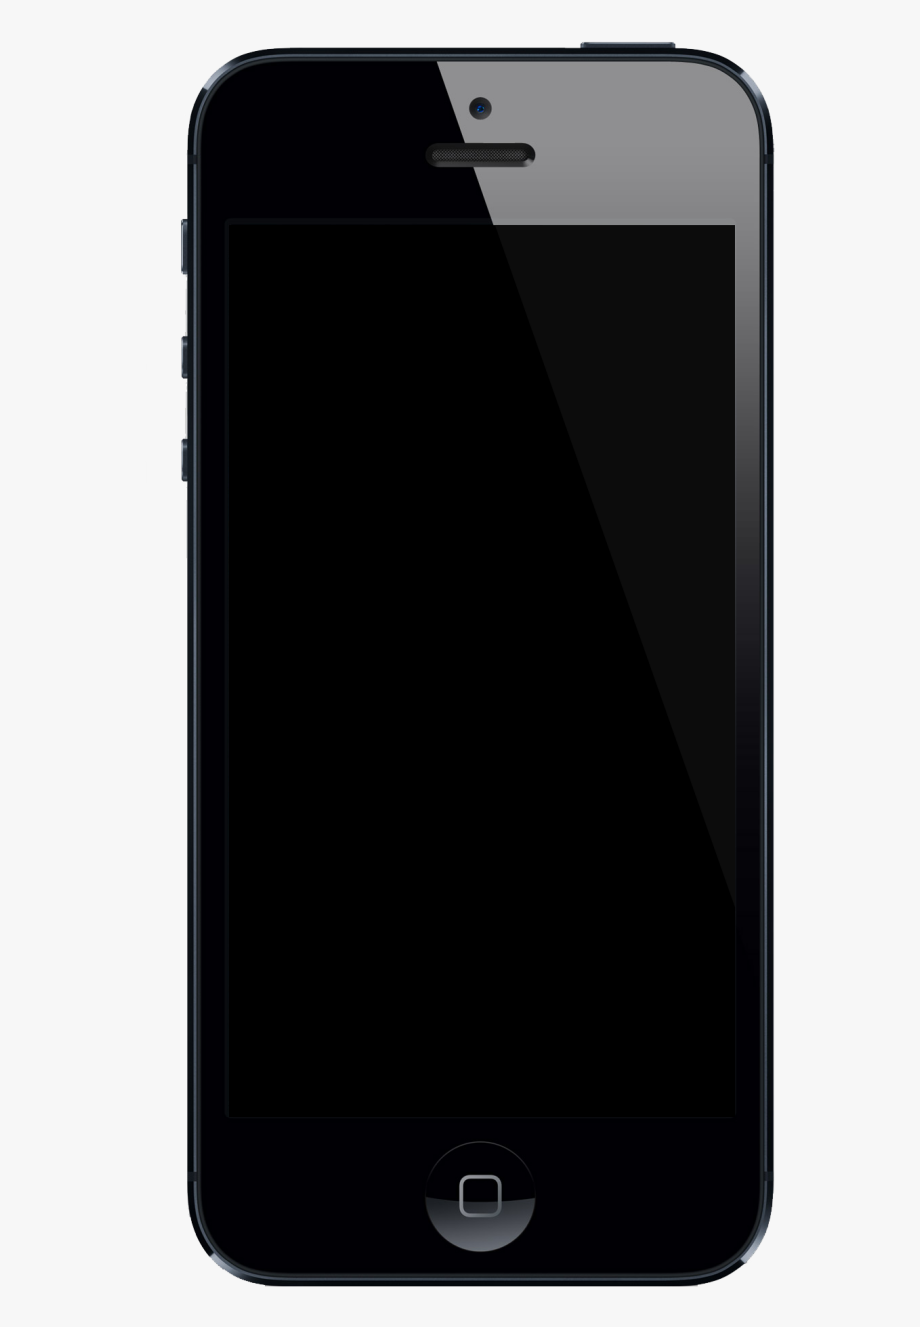 Blank iphone screen clipart image black and white Iphone 7 Clipart 7png - Black Iphone 7 Blank Screen #735681 - Free ... image black and white